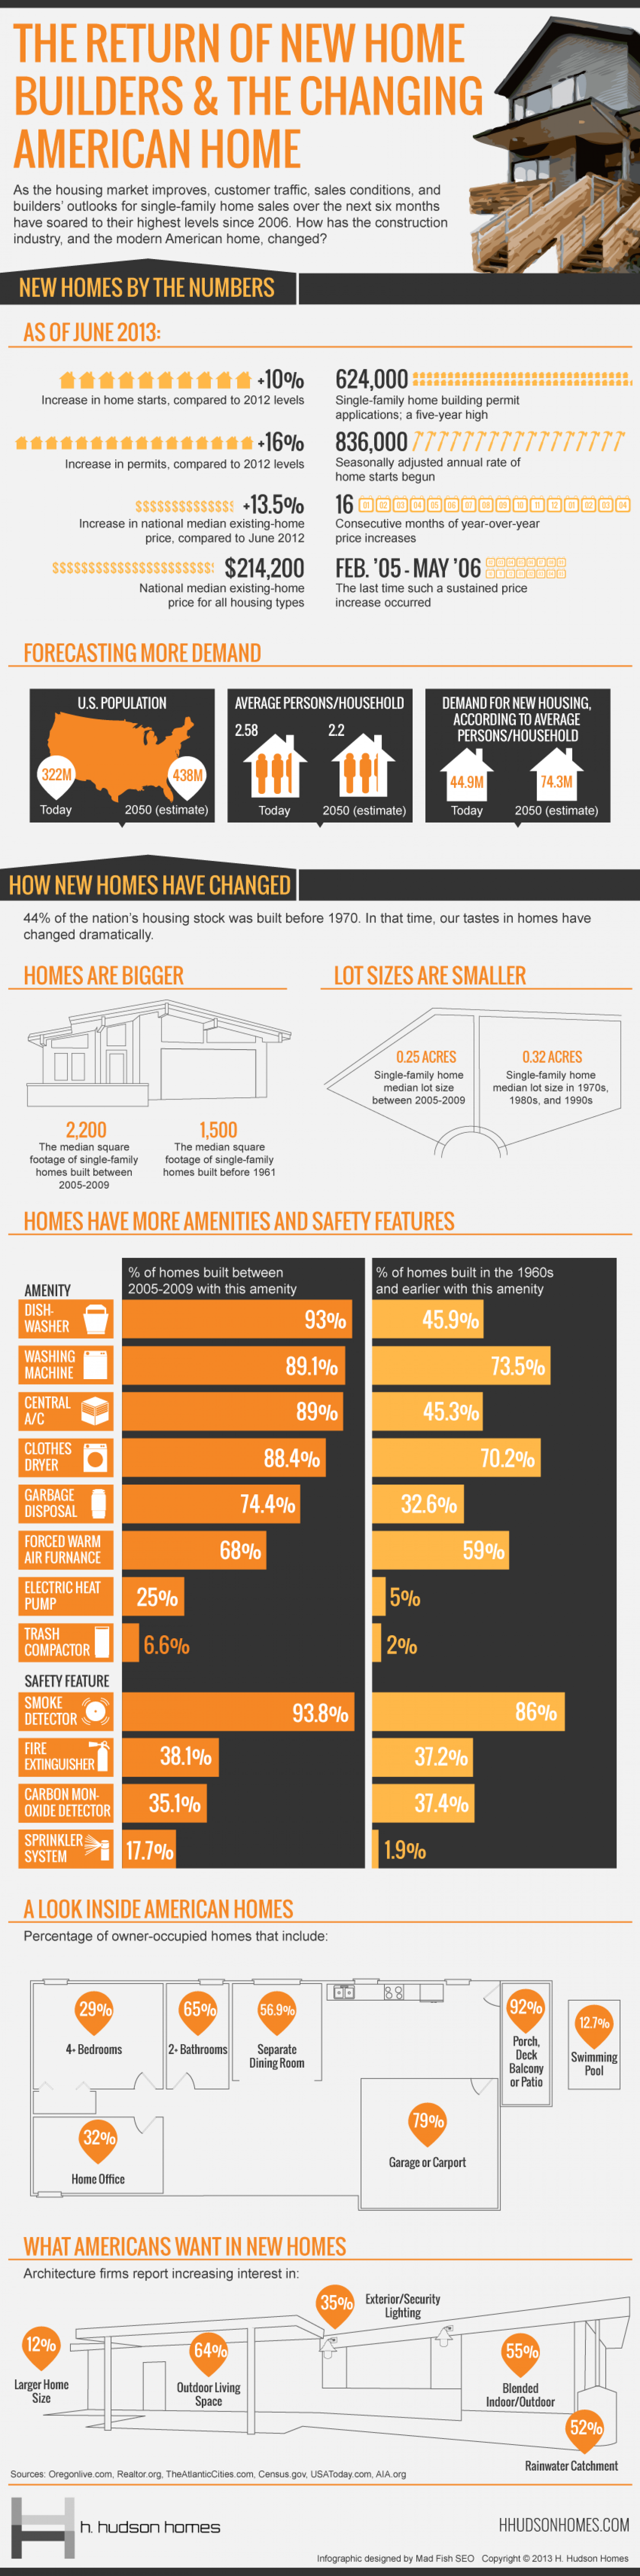 The Return of New Home Builders & the Changing American Home Infographic